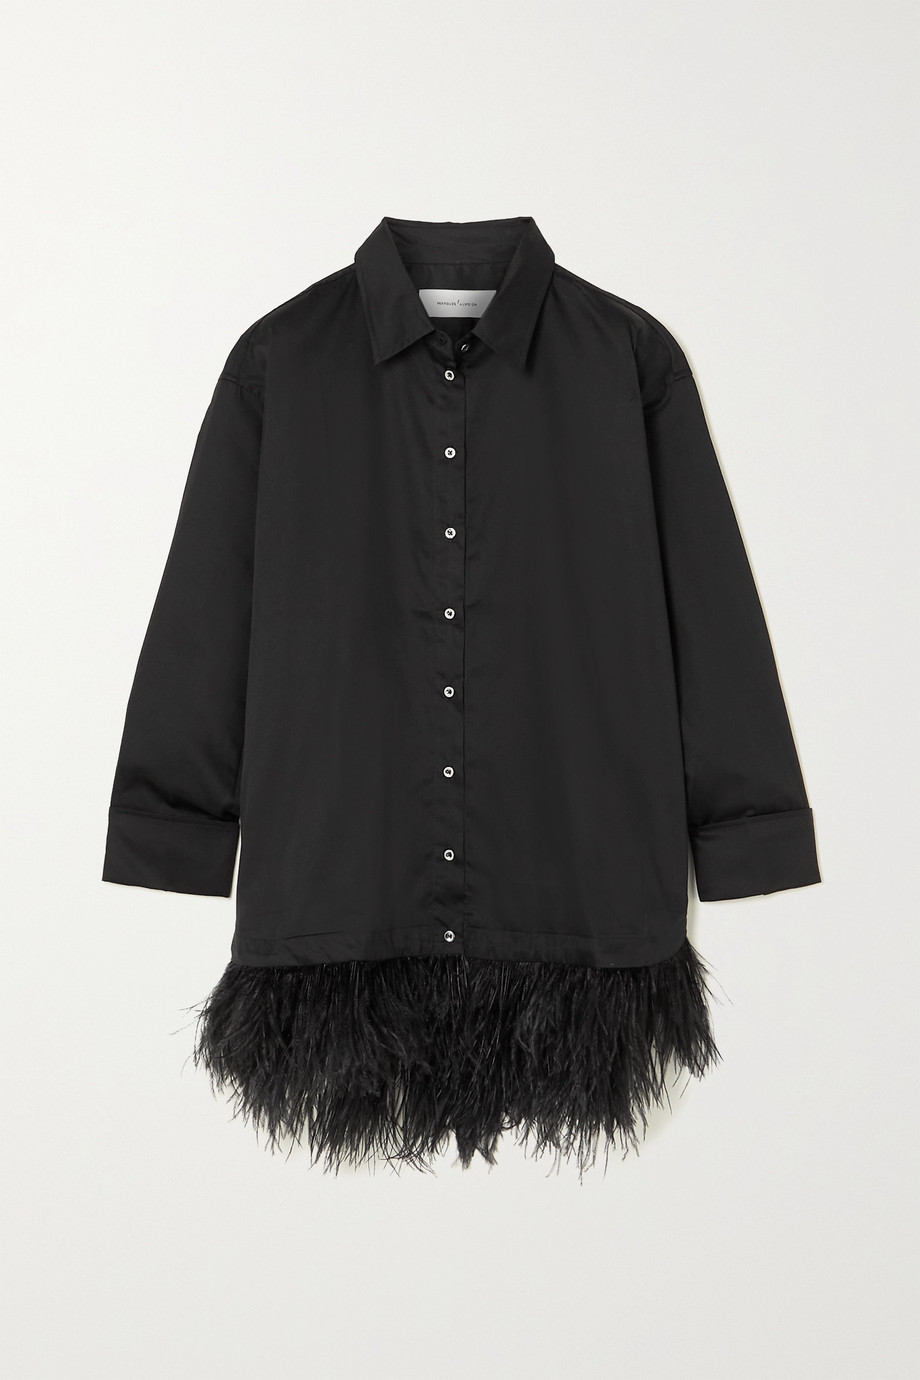 Marques' Almeida Oversized feather-trimmed cotton shirt